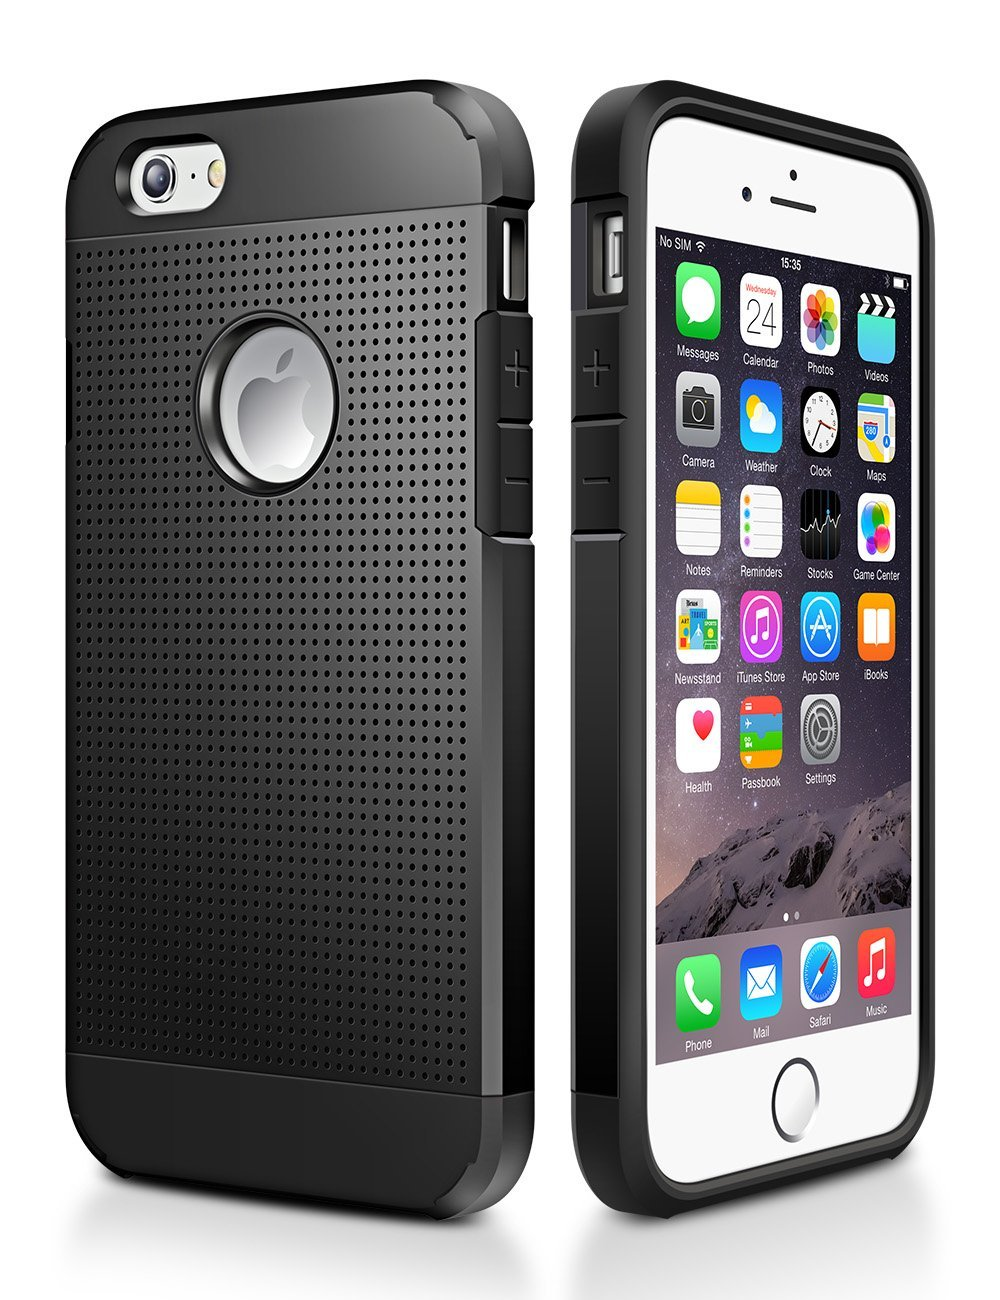 New Trent LV6 Rugged Protective Durable TPU iPhone 6s PU Leather case iPhone 6 and iPhone 6s iPhone 6s Case NOT Compatible with iPhone 6 Plus 5.5 Inch Screen Color: Black